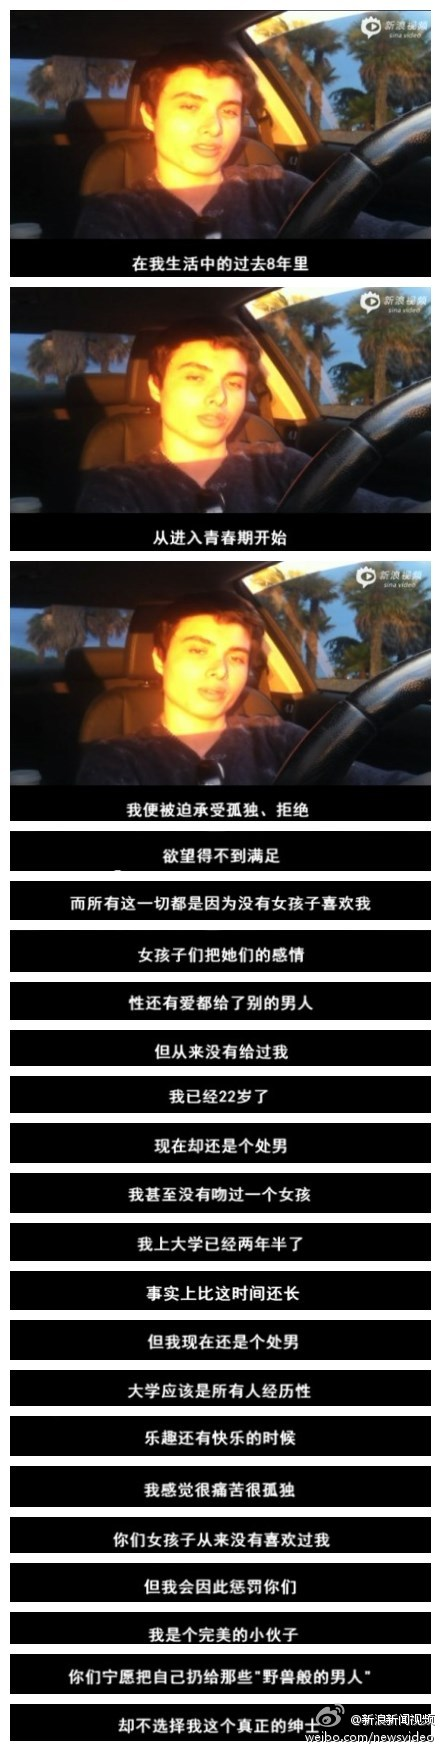 Chinese subtitles of Elliot Rodger's Retribution video.